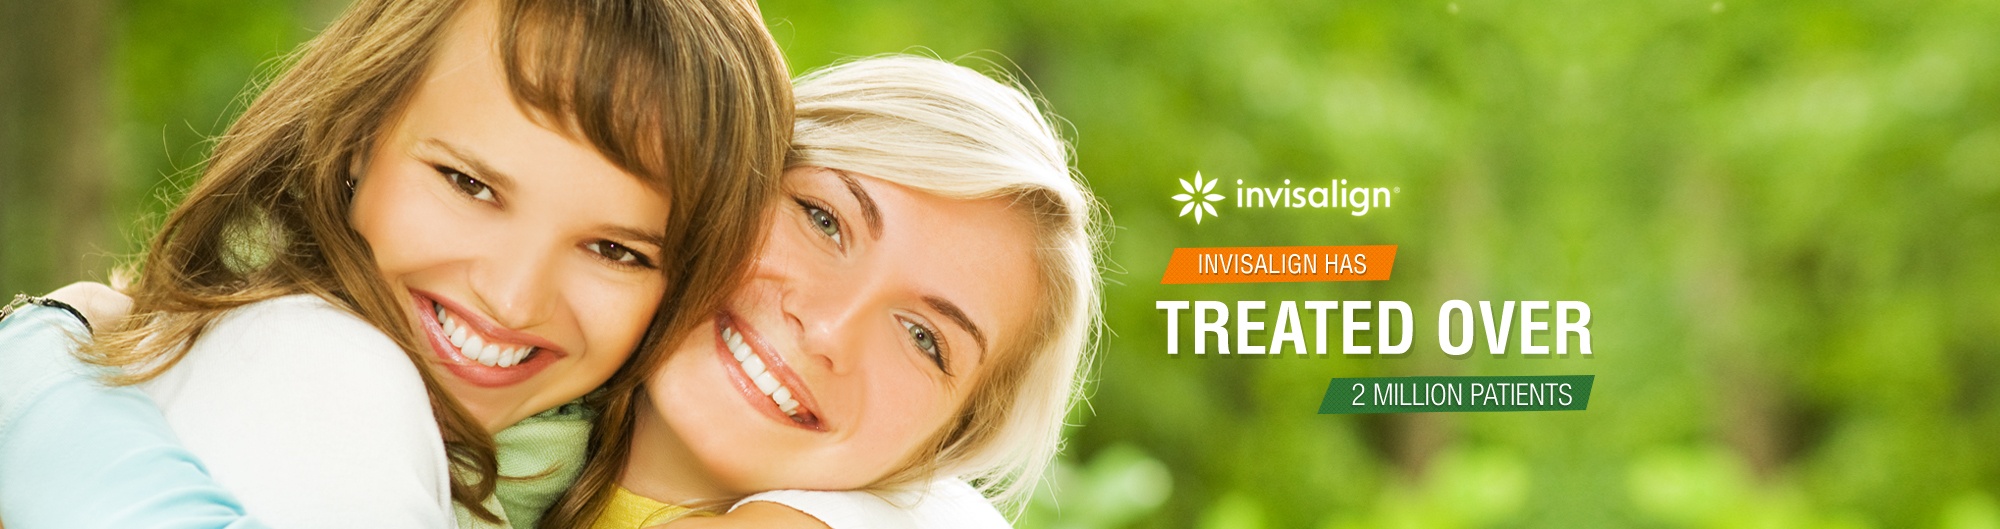 Invisalign Patients